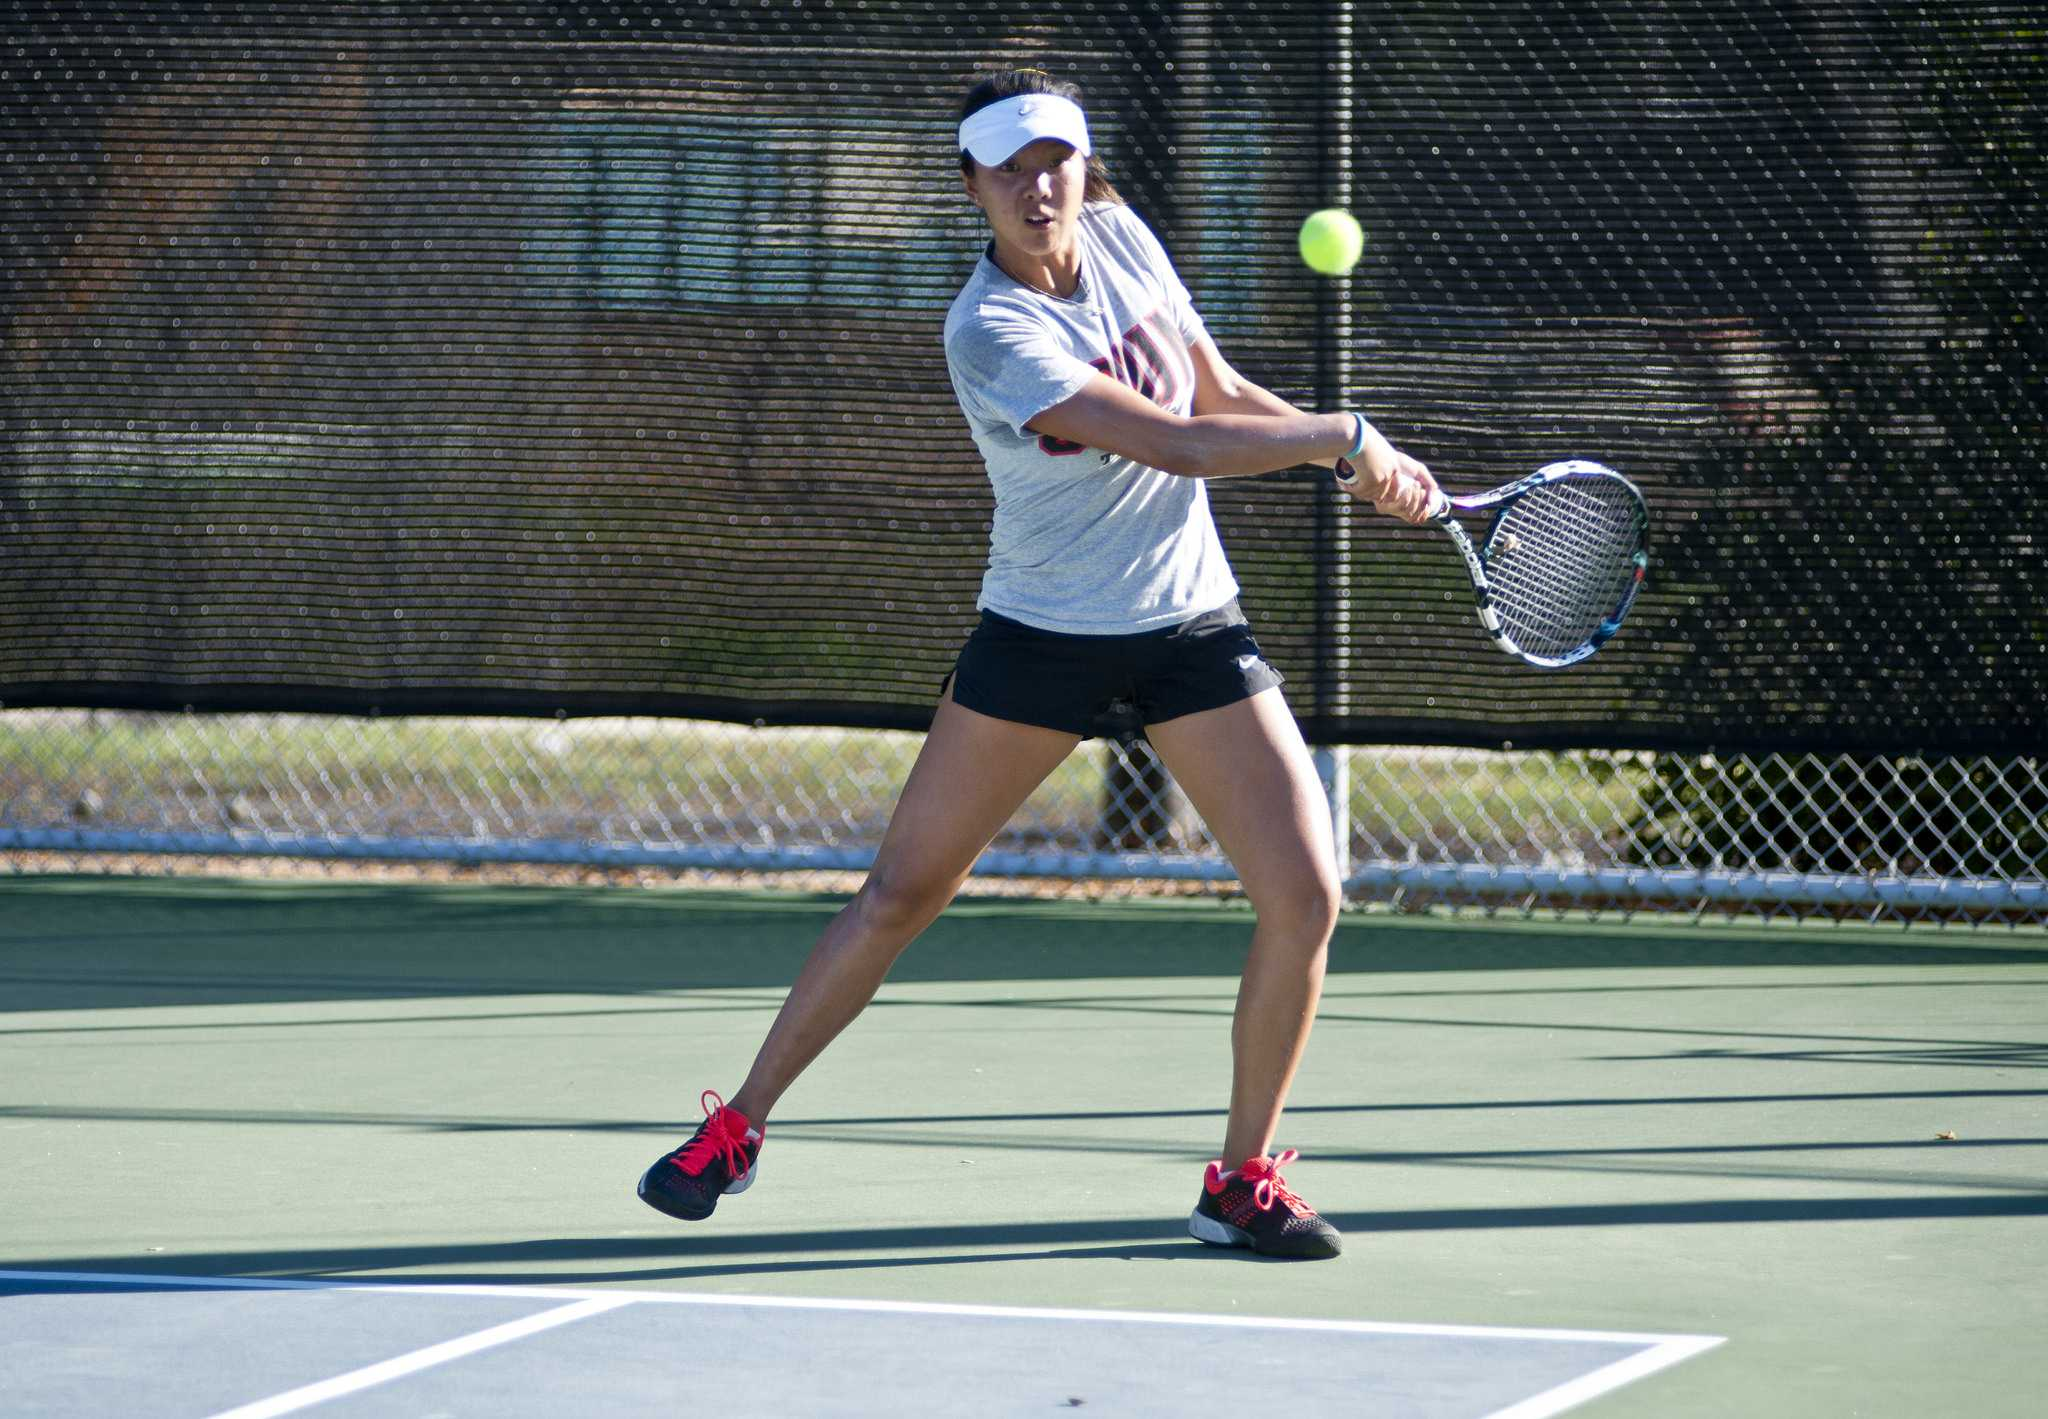 Women's Tennis: CSUN defeats UC Davis 4-3